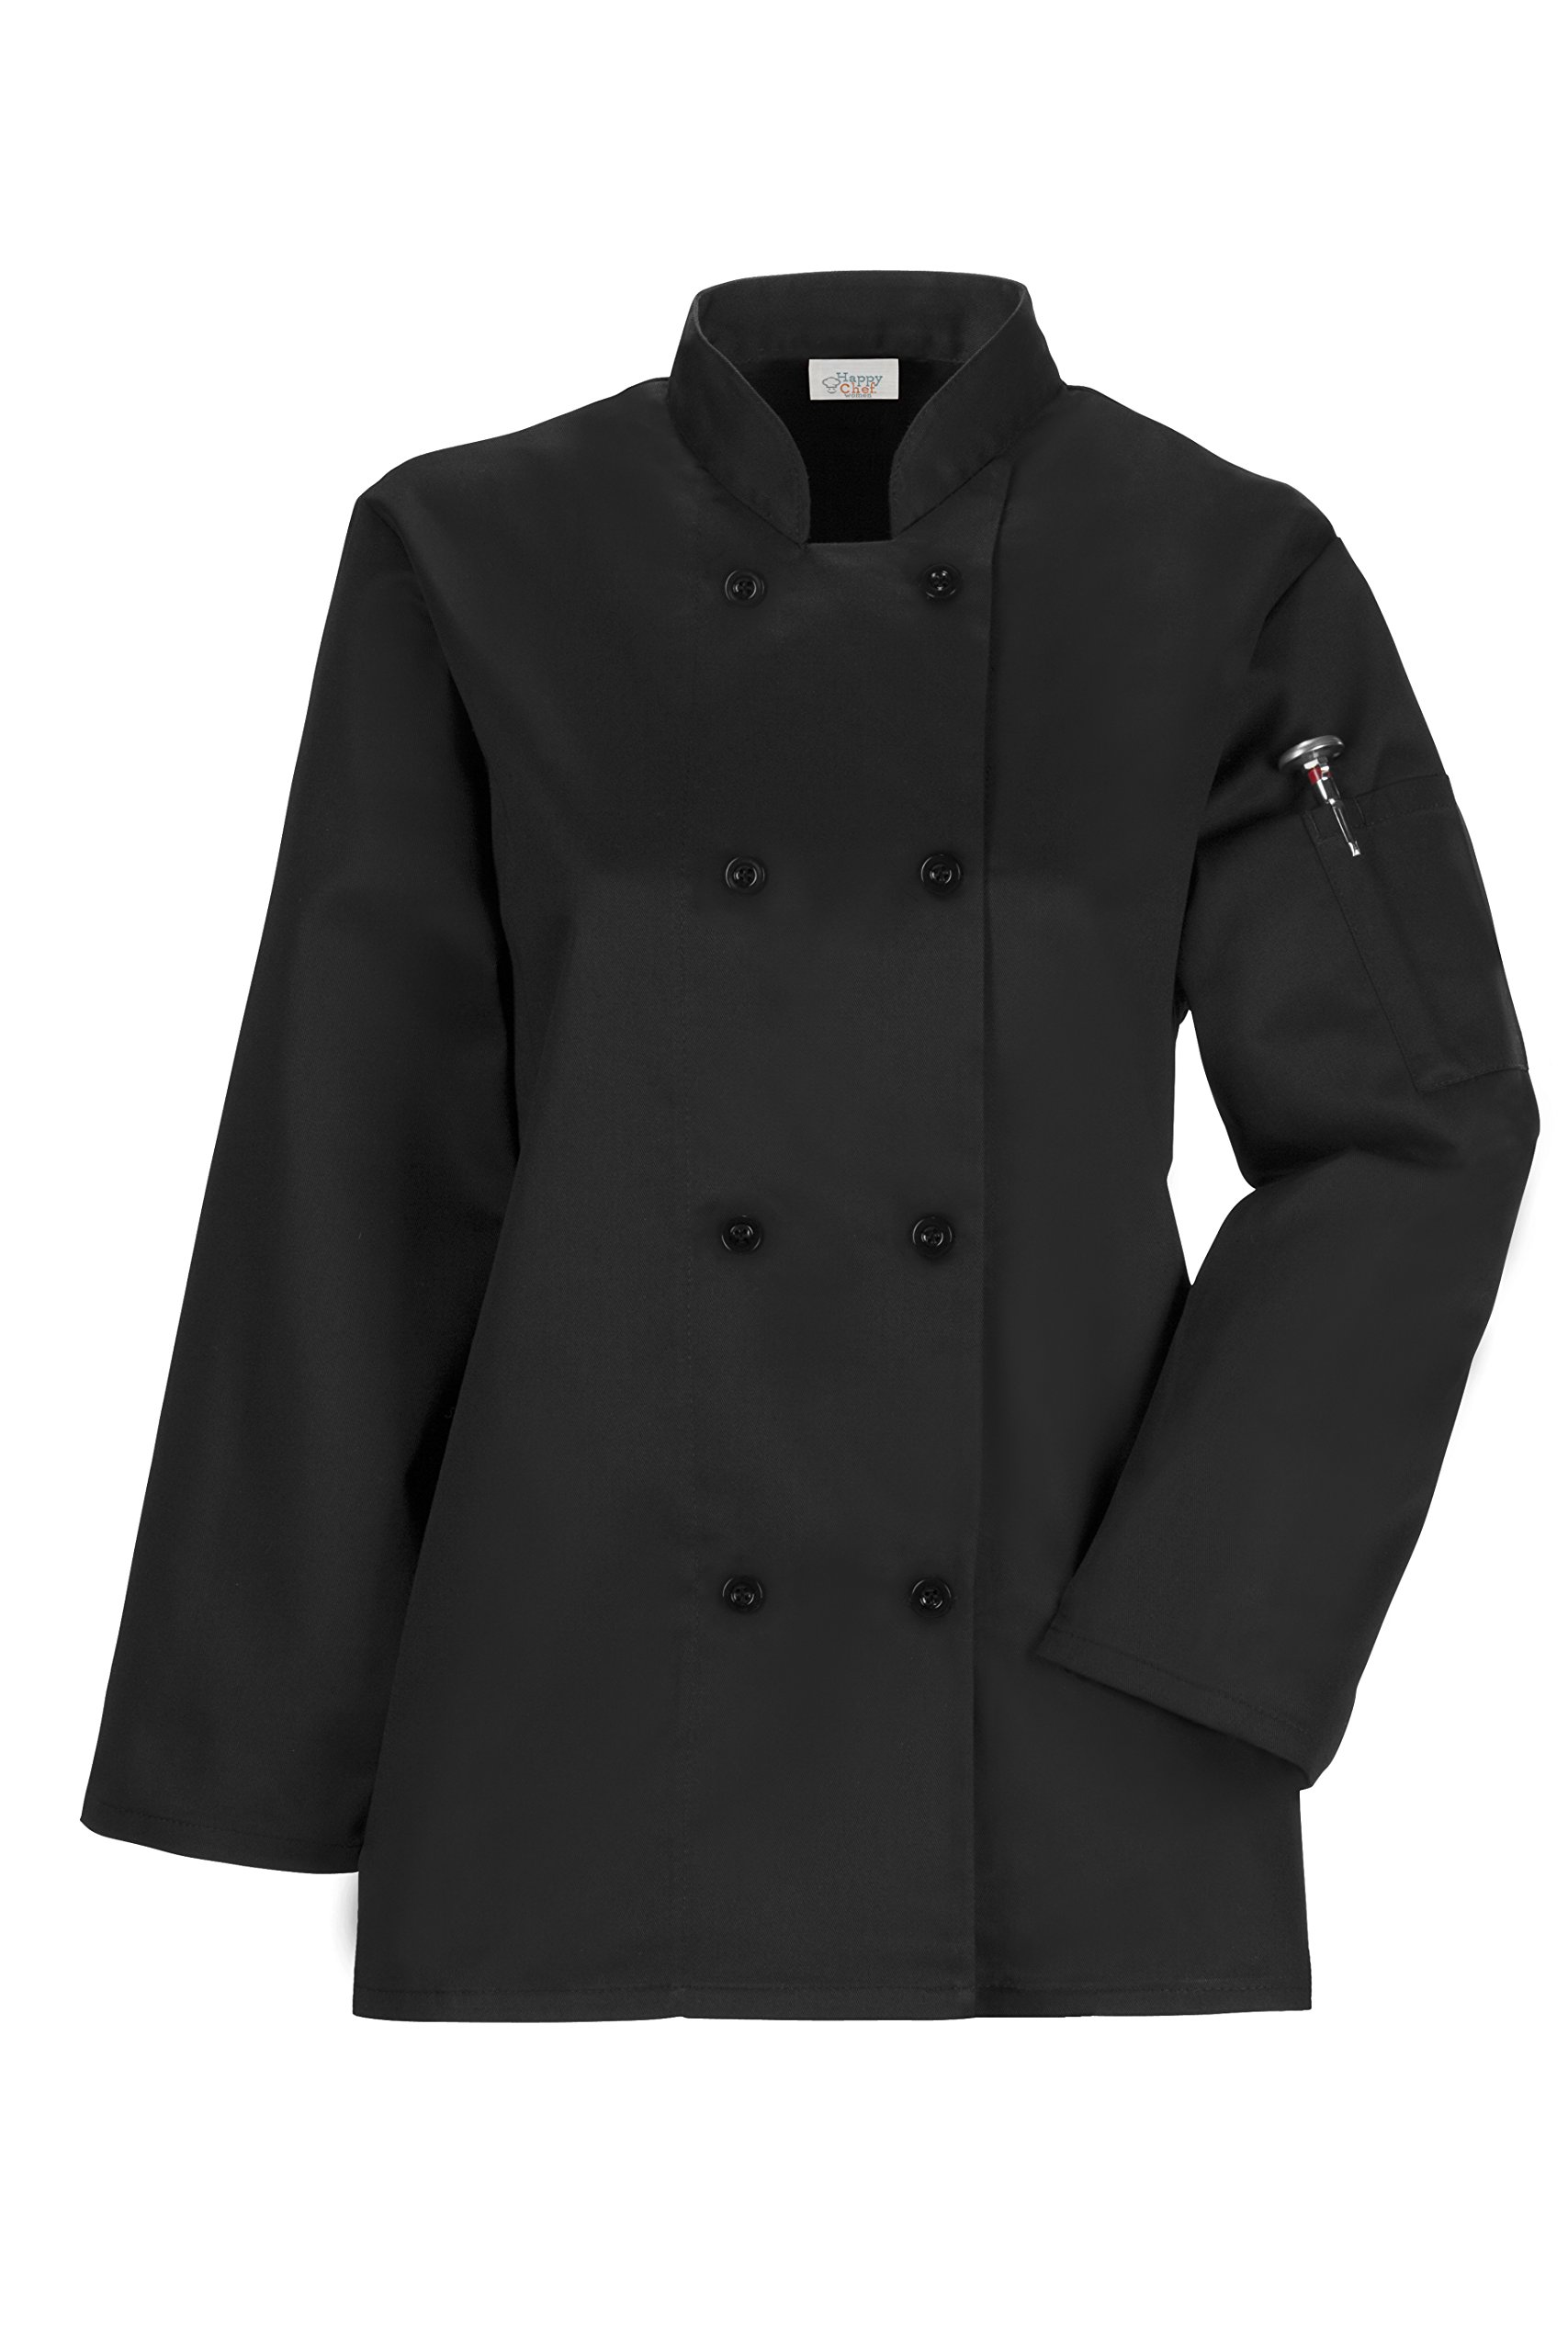 Happy Chef Women's Traditional 3/4 Sleeve Chef Coat (Black, XX-Large)